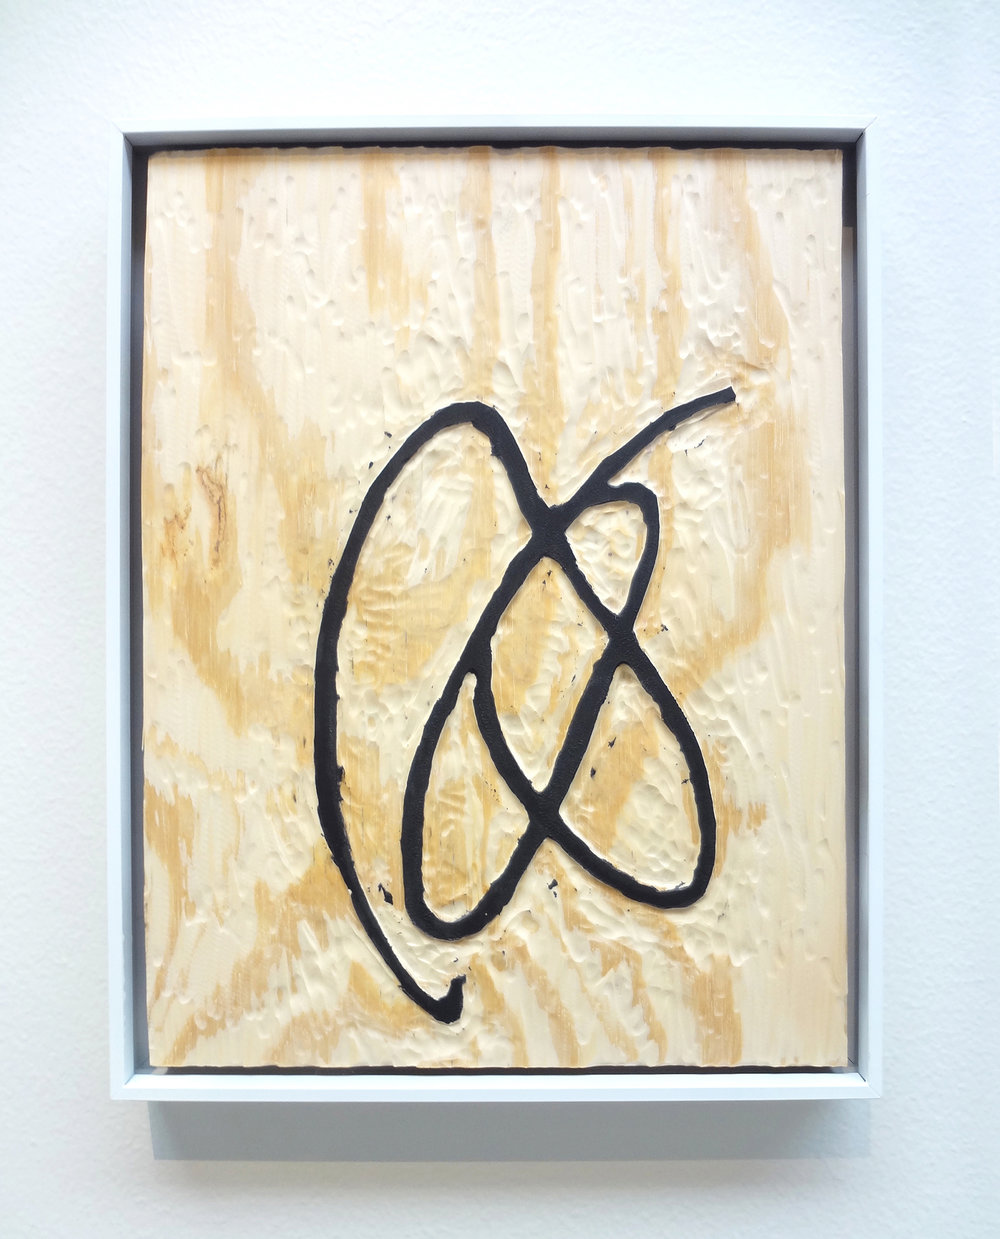 Meghan Gerety  Untitled 06 , 2015 blockprint ink on plywood 15 x 12 in. framed in aluminum